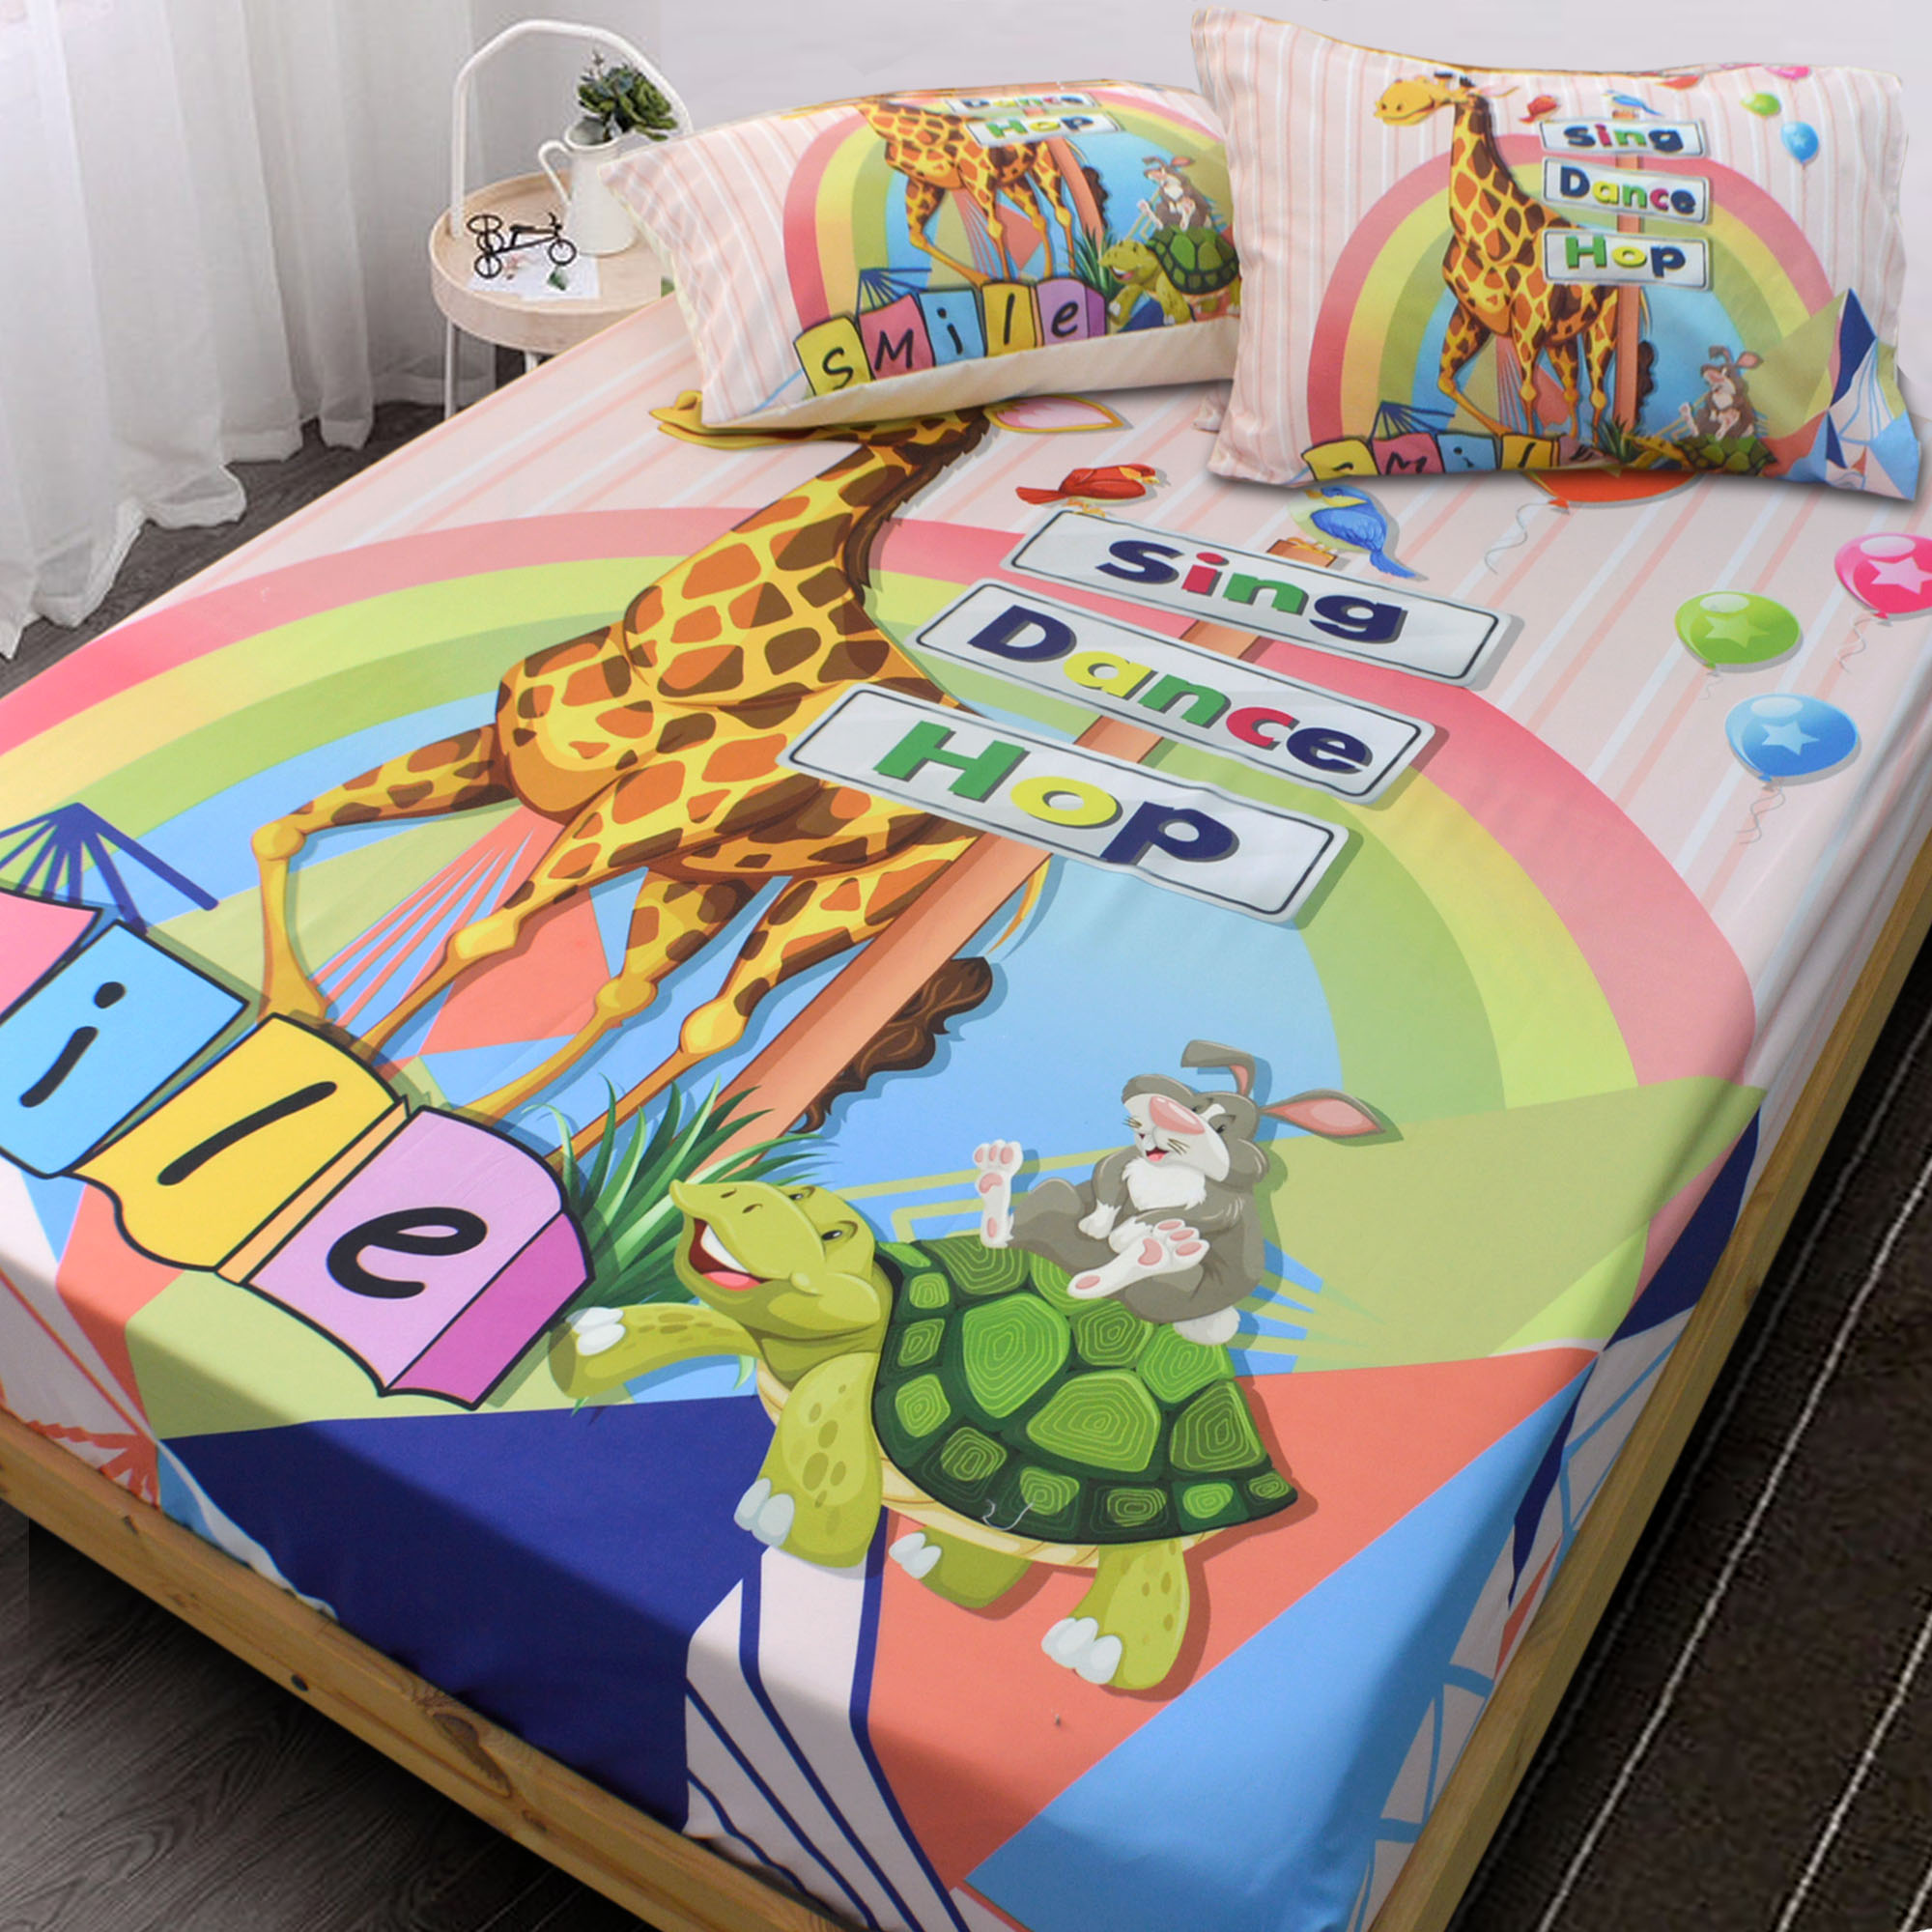 NEW Essina Kids 1 Fitted Bed sheet & 2 Pillowcase Panel Print Set Bambino Collection